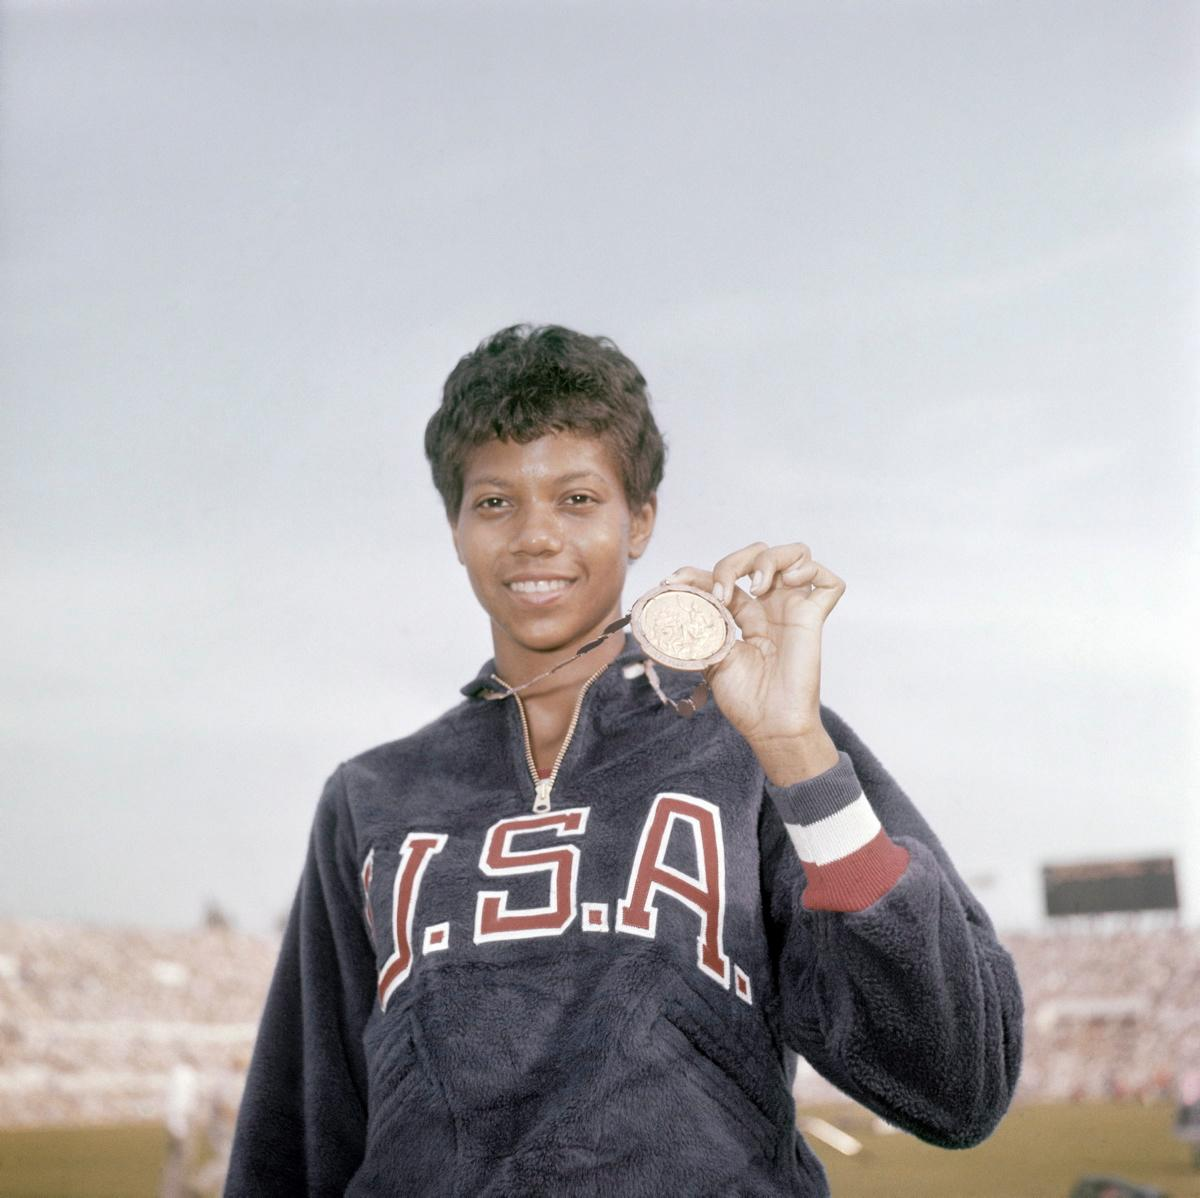 Wilma Rudolph shows off her bronze medal in the Summer Olympics 1956